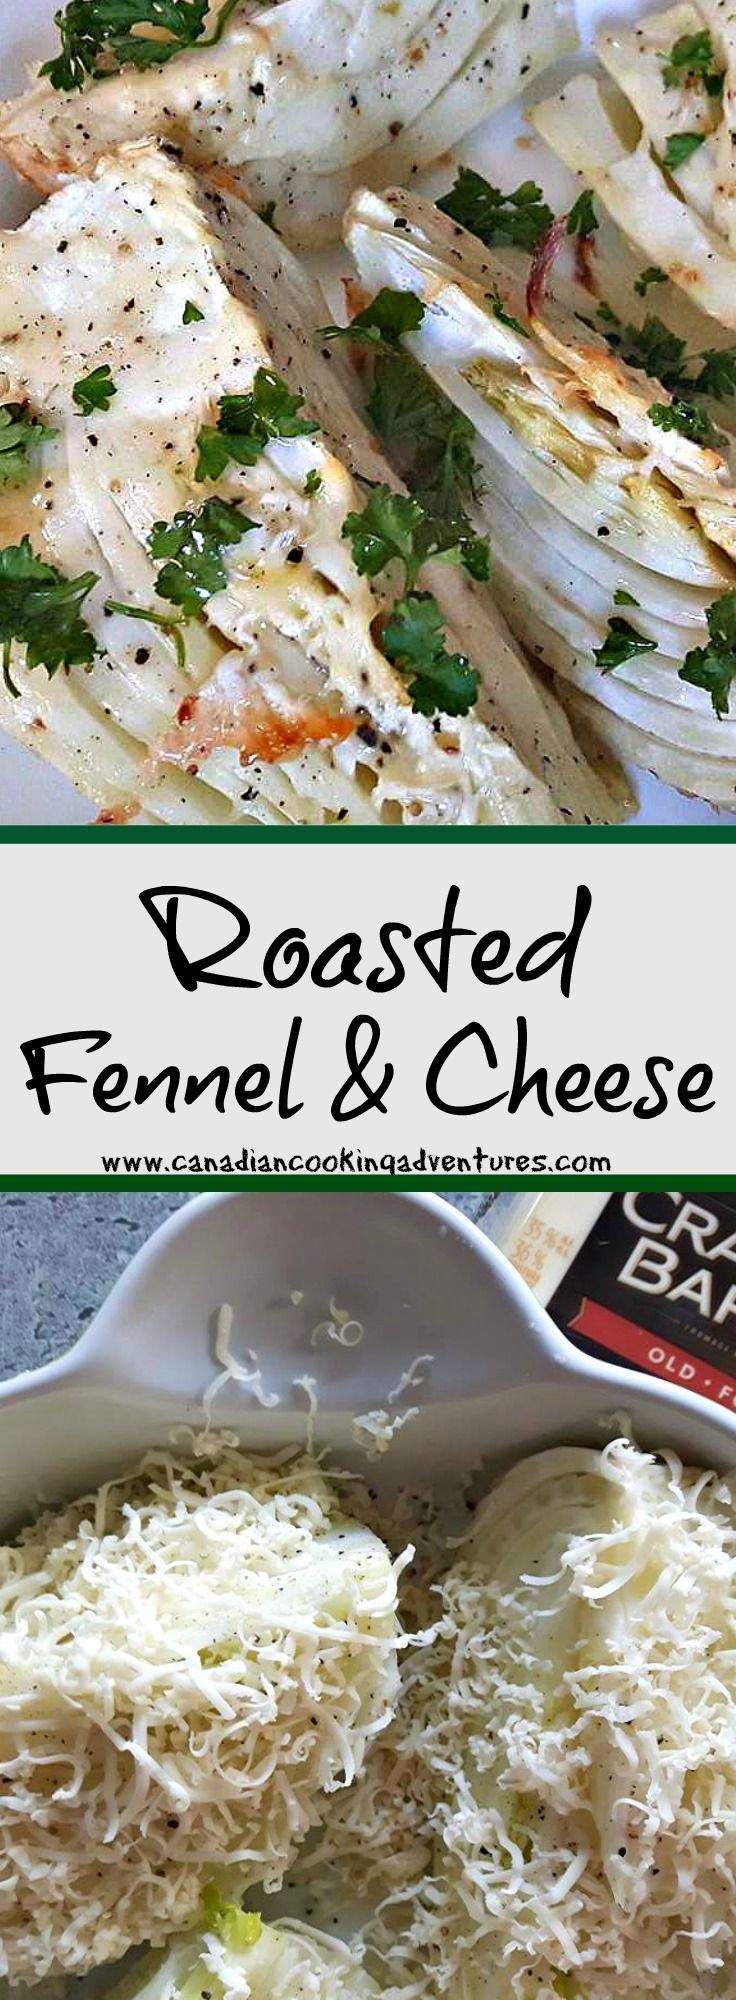 Roasted Fennel Cheese